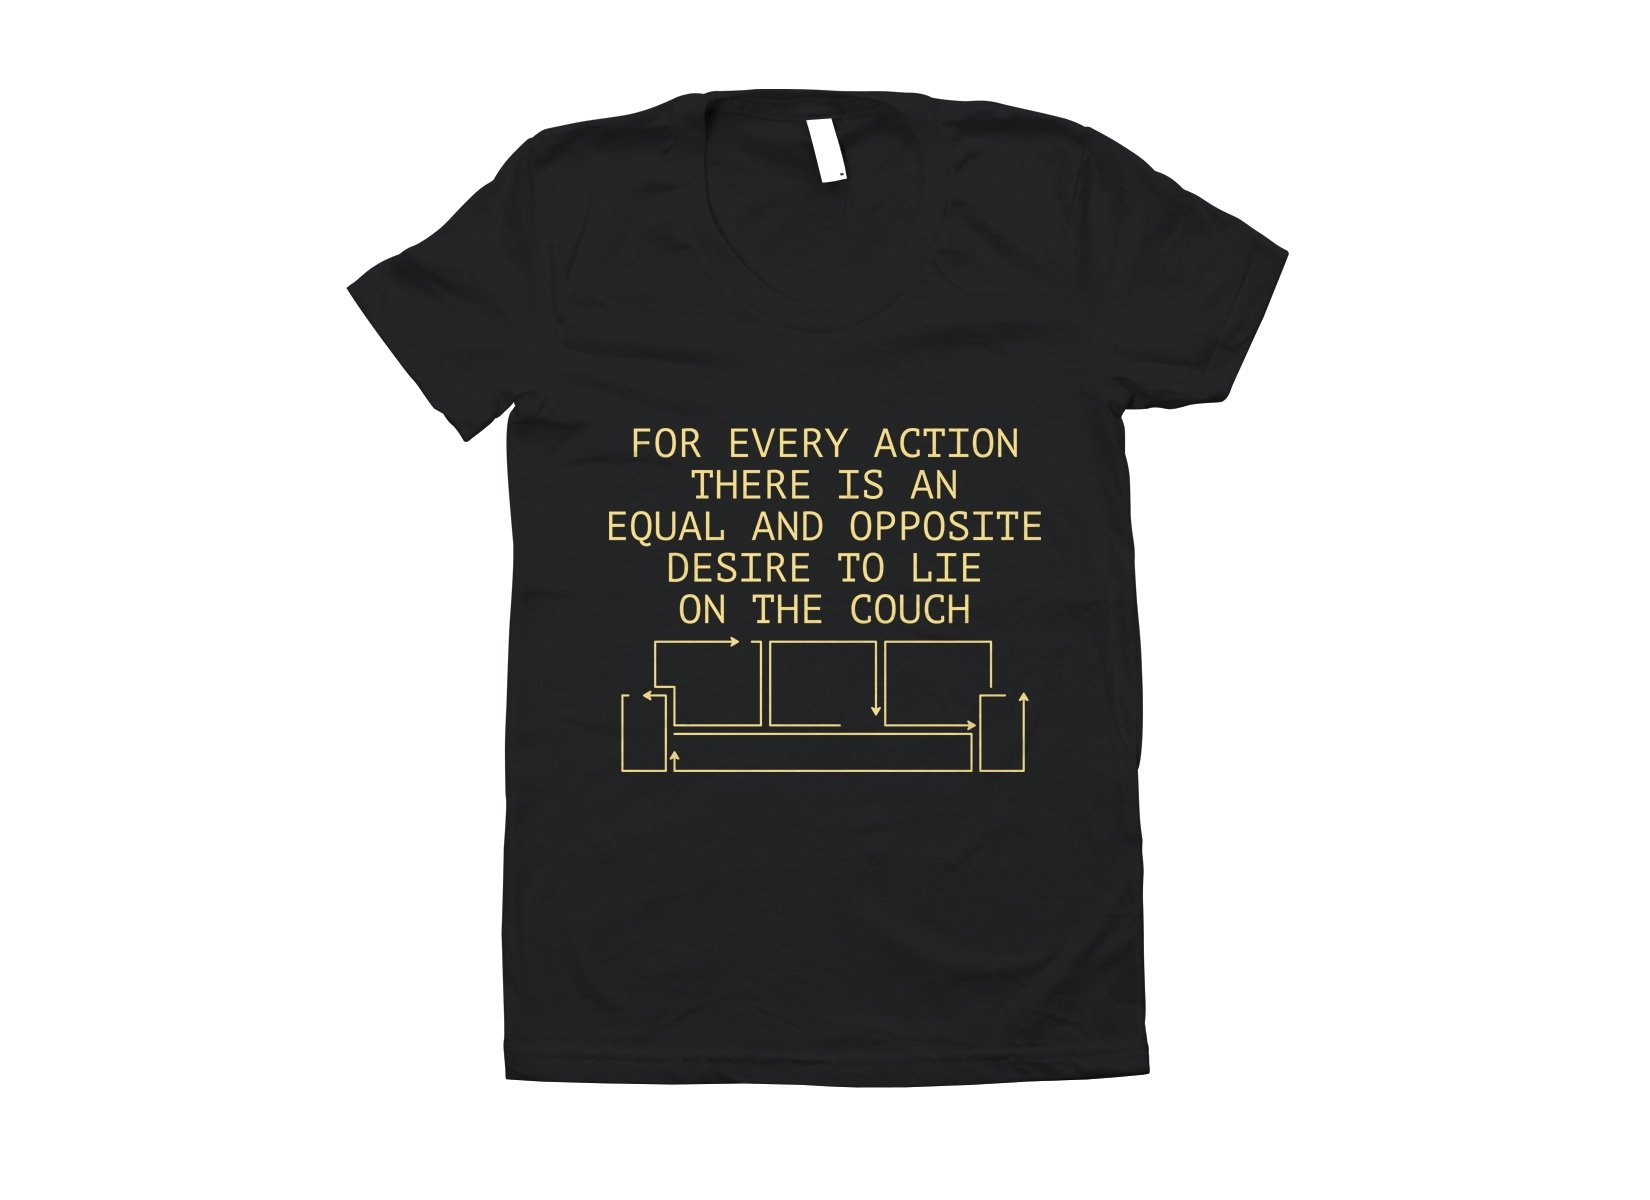 For Every Action There Is An Equal And Opposite Desire To Lie On The Couch on Juniors T-Shirt